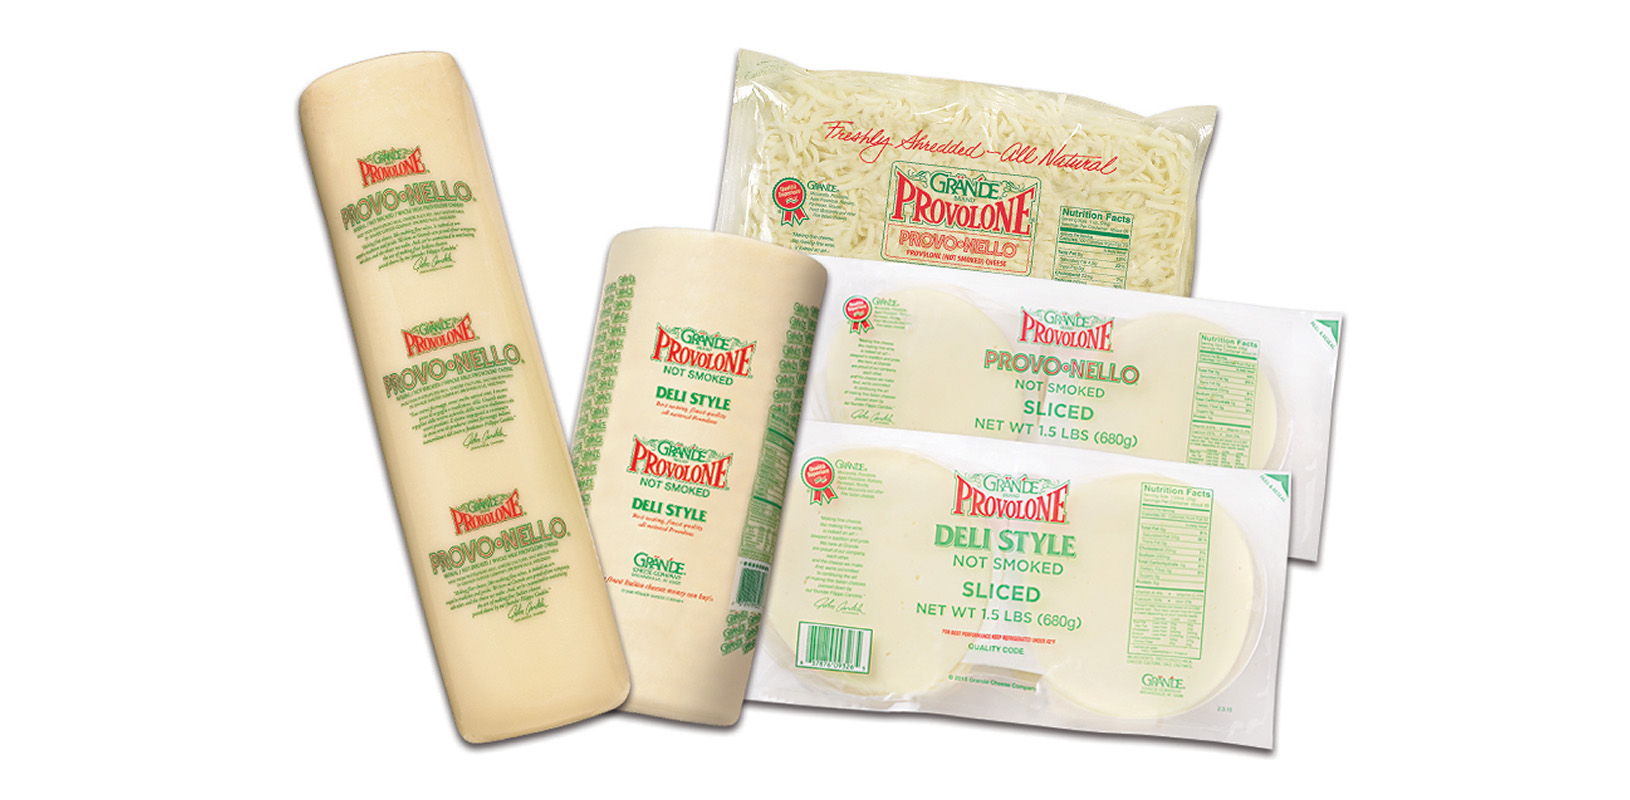 Provolone Cheese Family Image